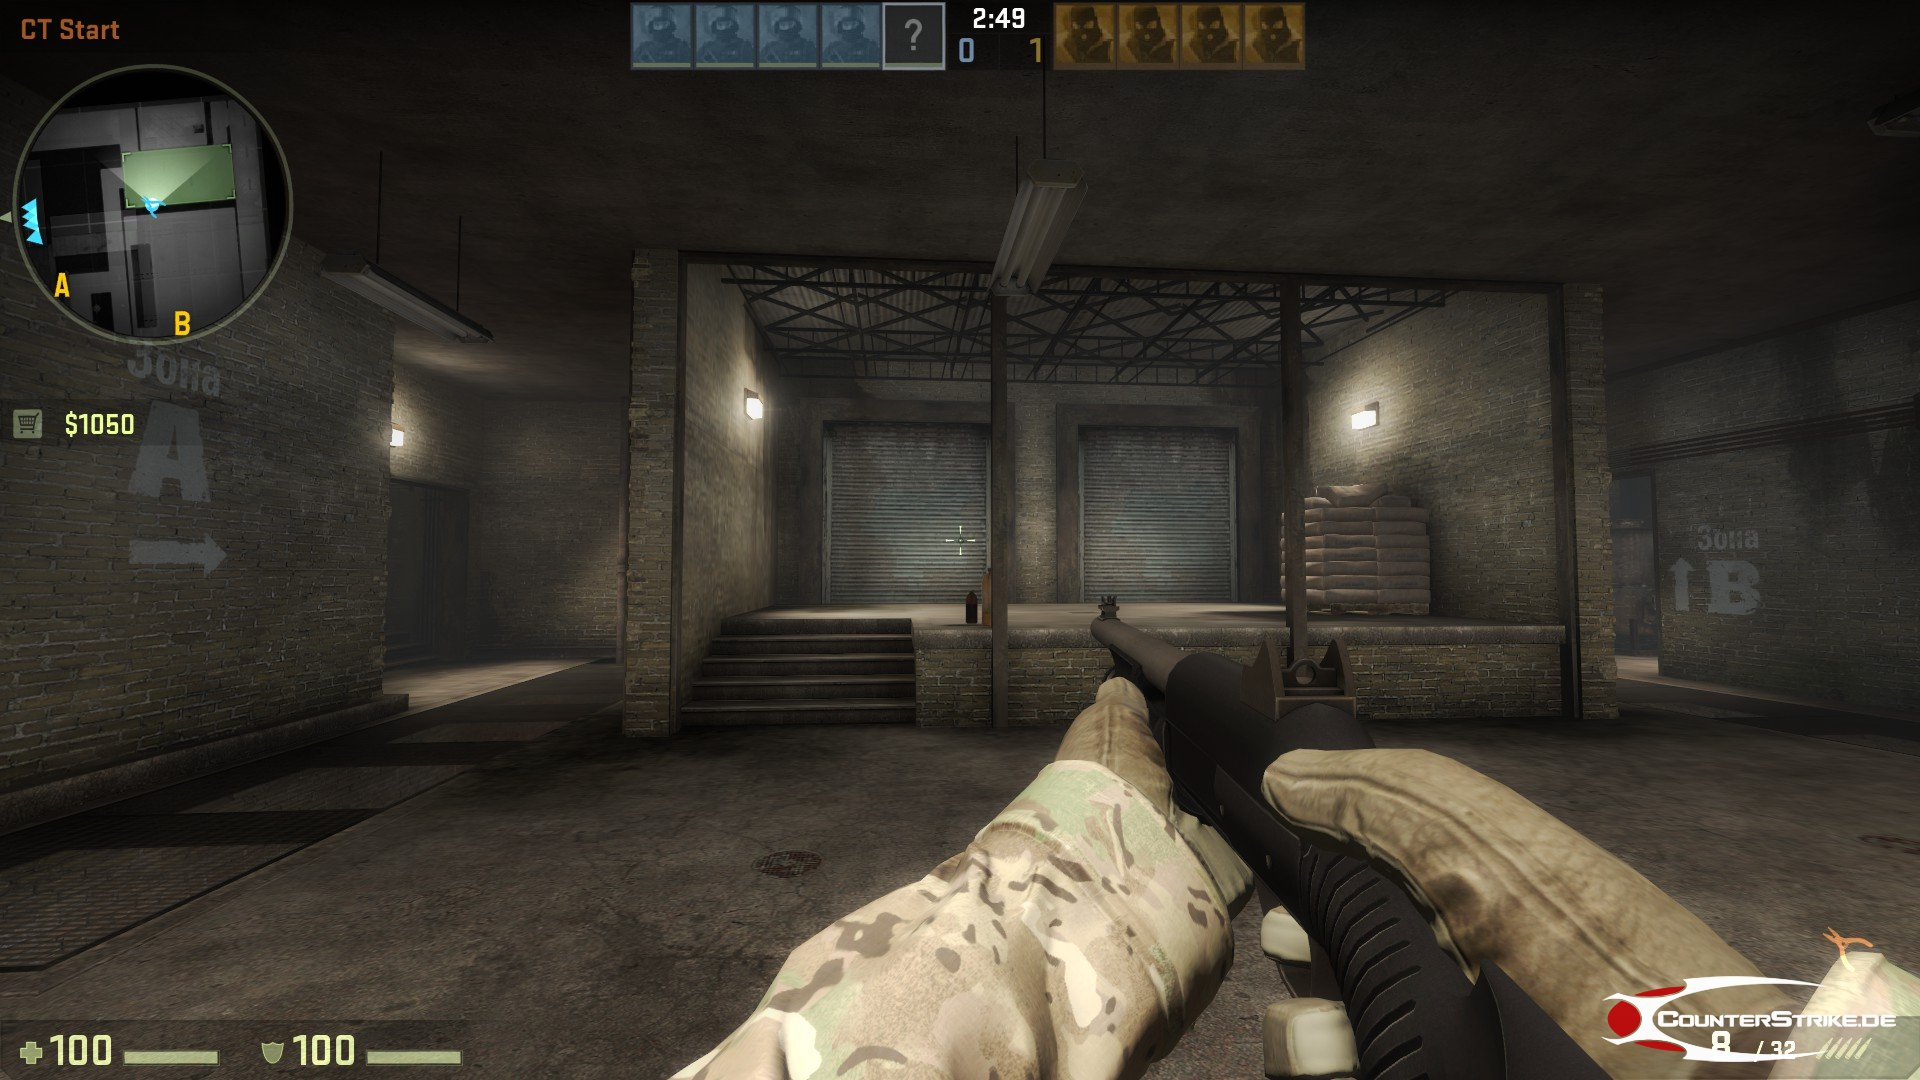 counter strike global offensive online spielen